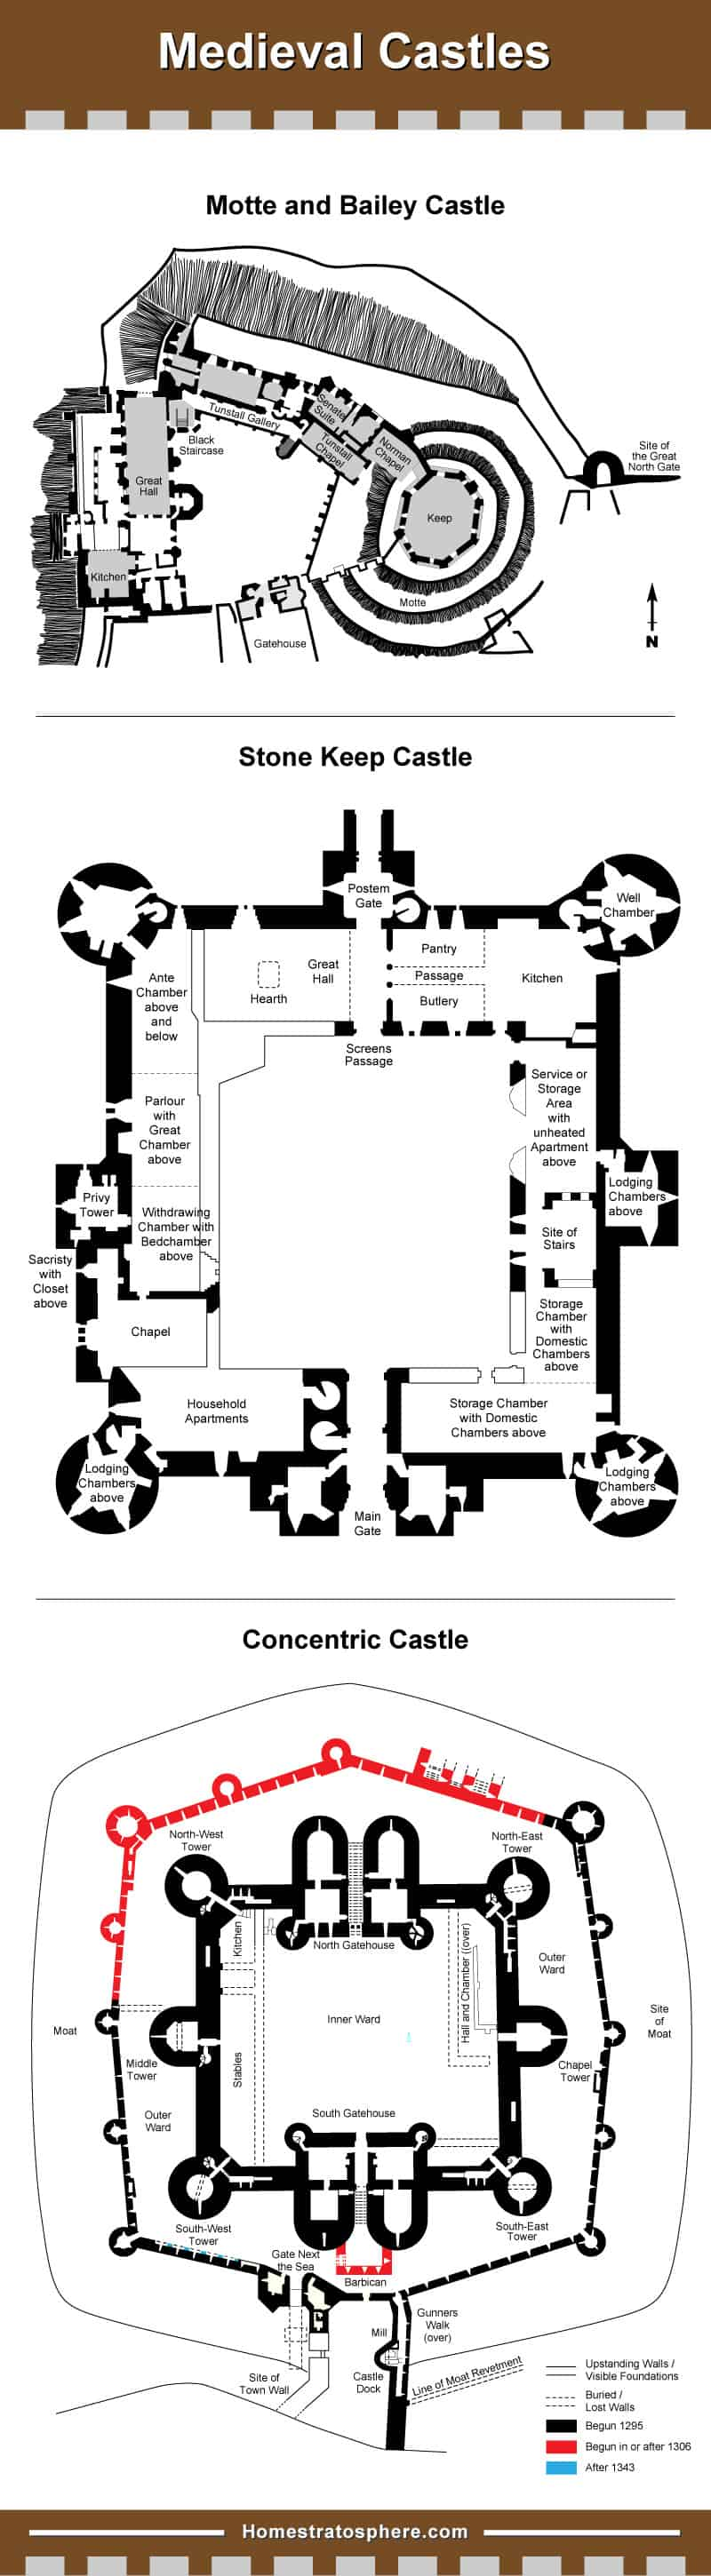 Medieval Castle diagram layout